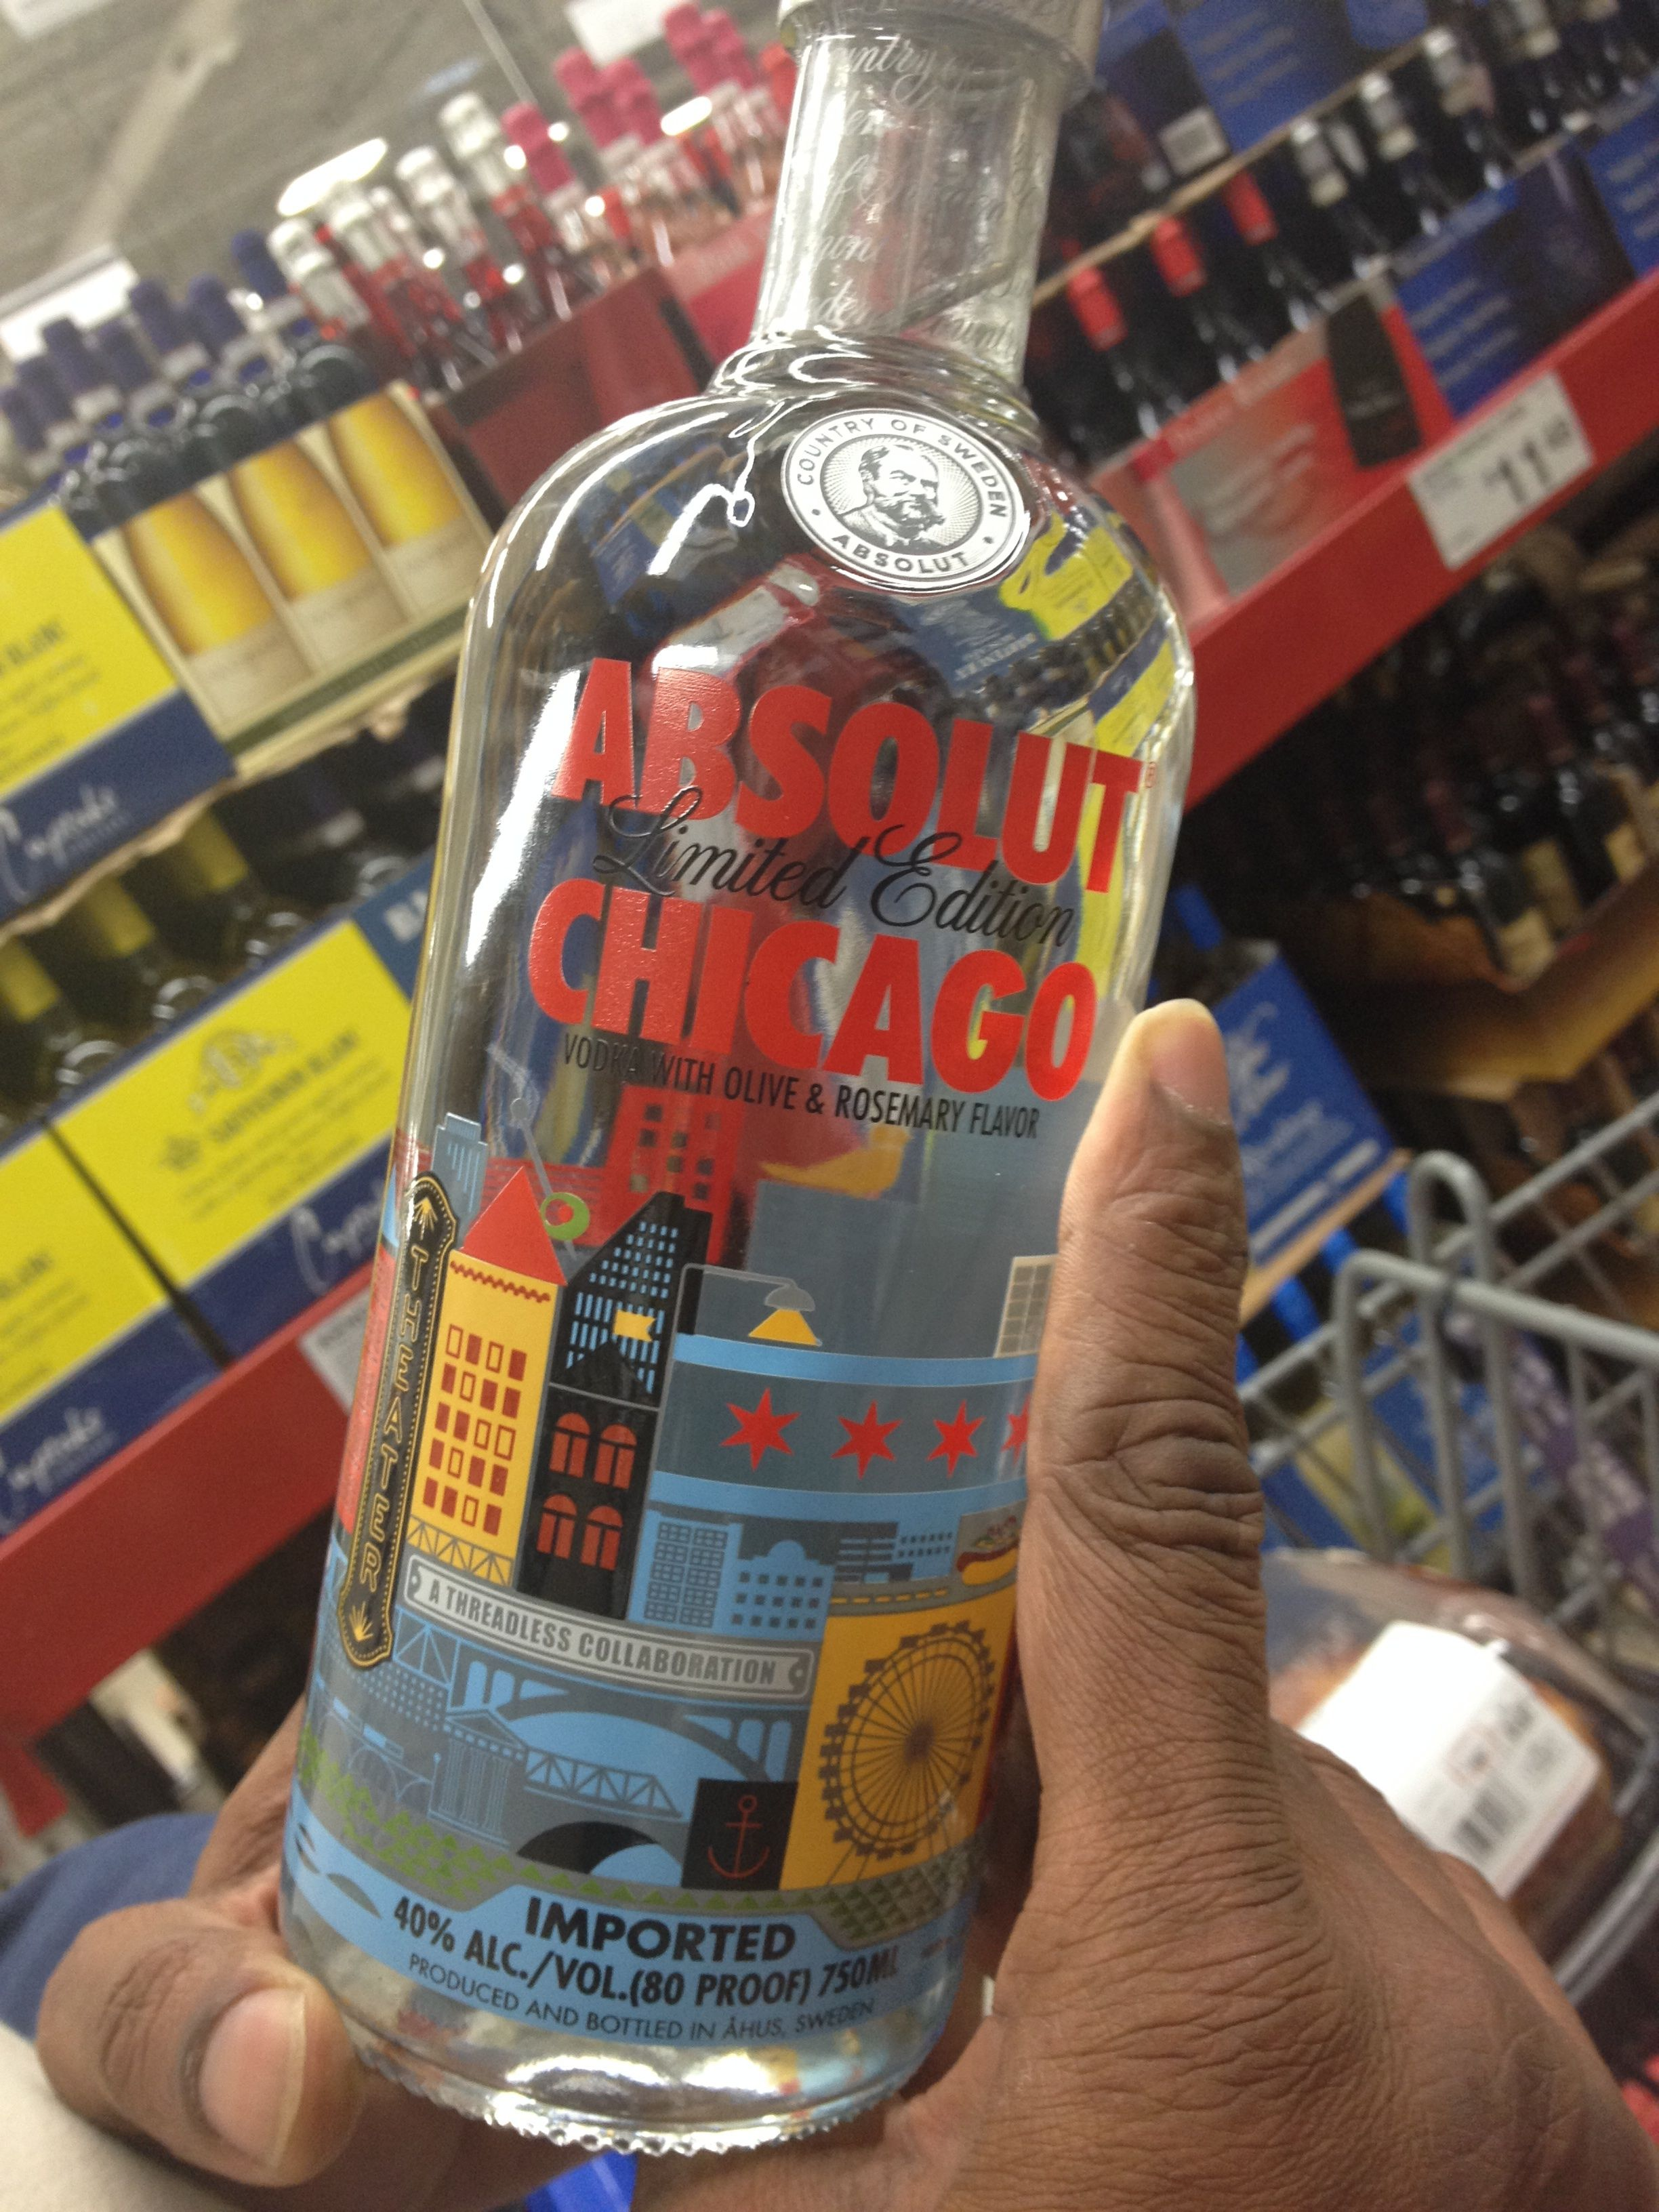 Holiday gift for the vodkaholic Chicagoan: Absolut Chicago. $19.99.